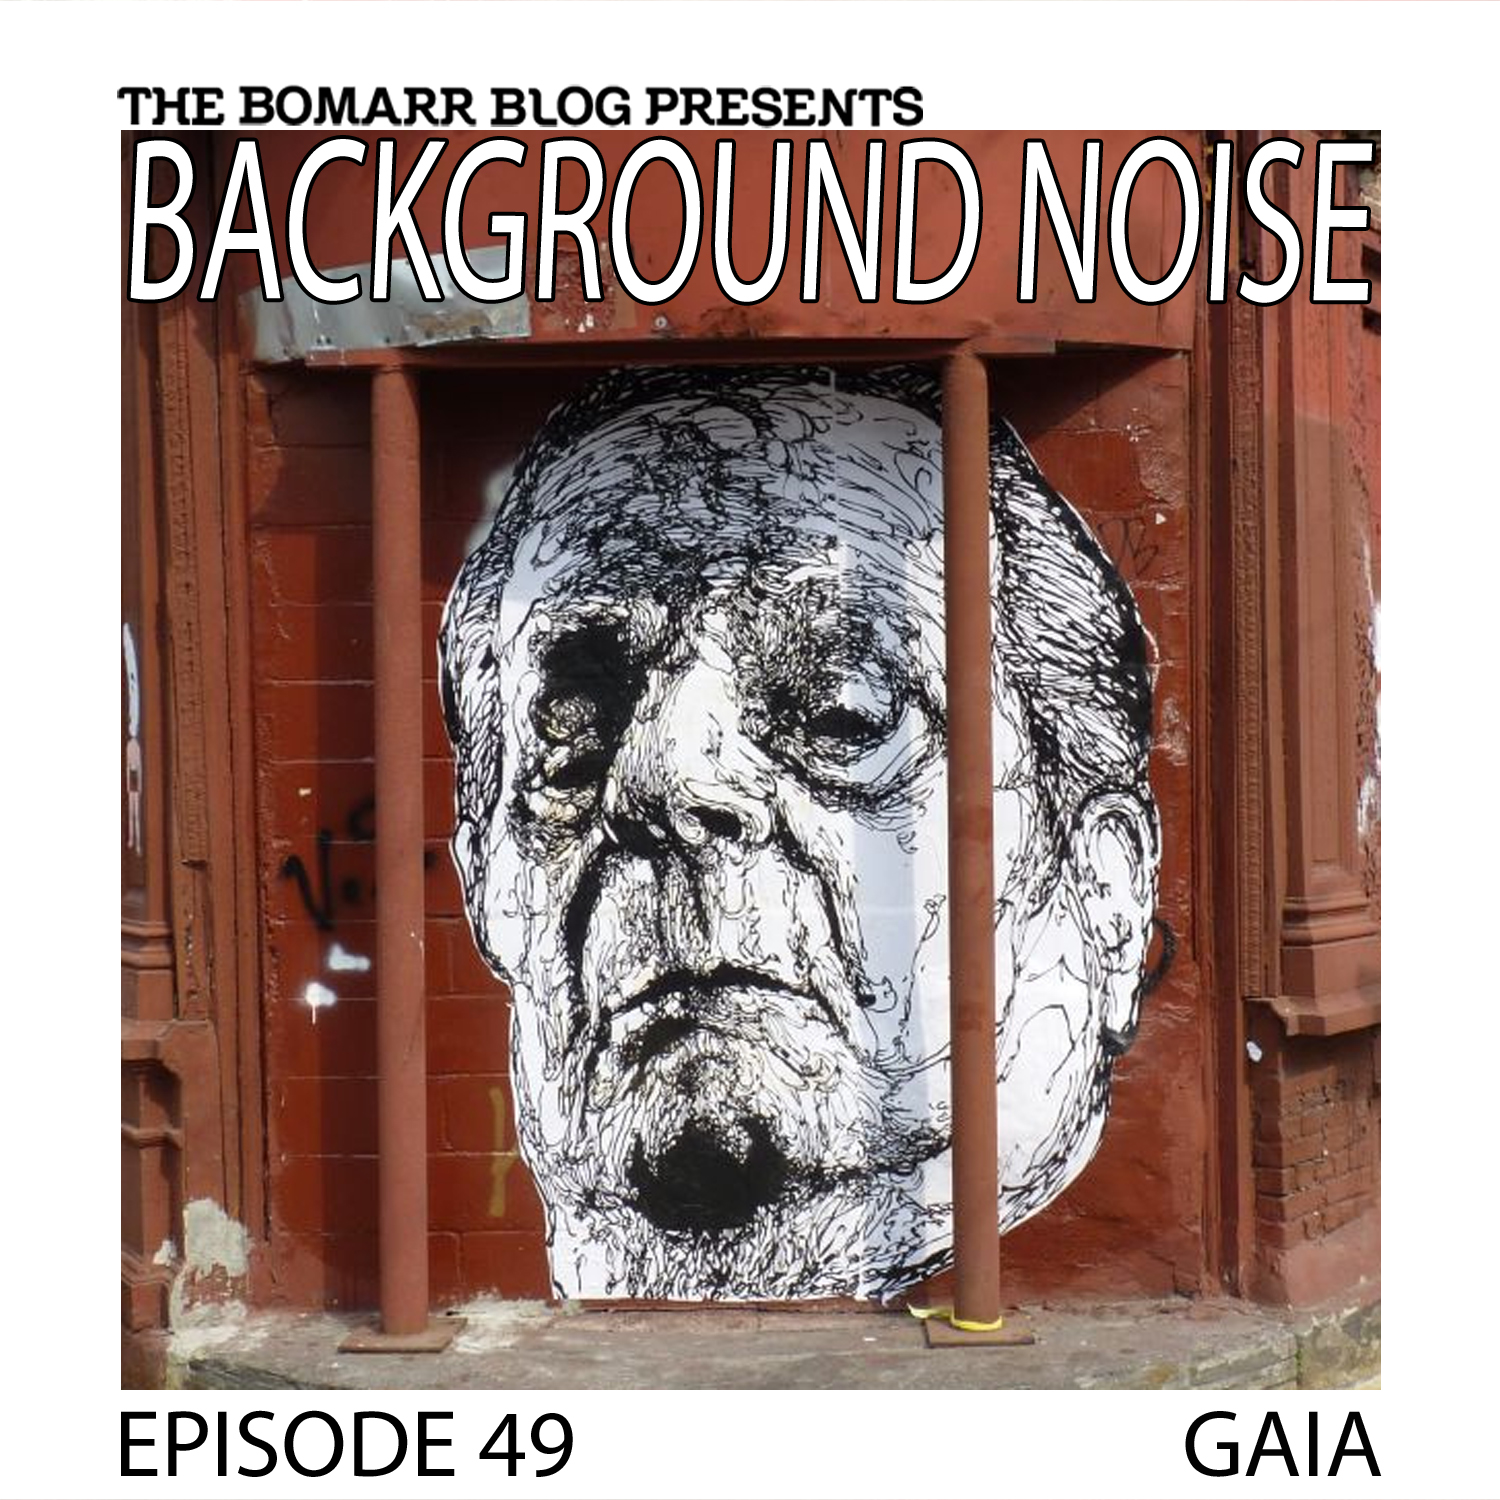 THE BACKGROUND NOISE PODCAST SERIES FOCUSES ON THE MUSIC THAT ARTISTS LISTEN TO WHEN THEY WORK, WHAT MUSIC INSPIRES THEM, OR JUST MUSIC THEY LIKE. THIS WEEK, IN EPISODE 49, THE FOCUS IS ON GAIA (photo via  gammablog.com )